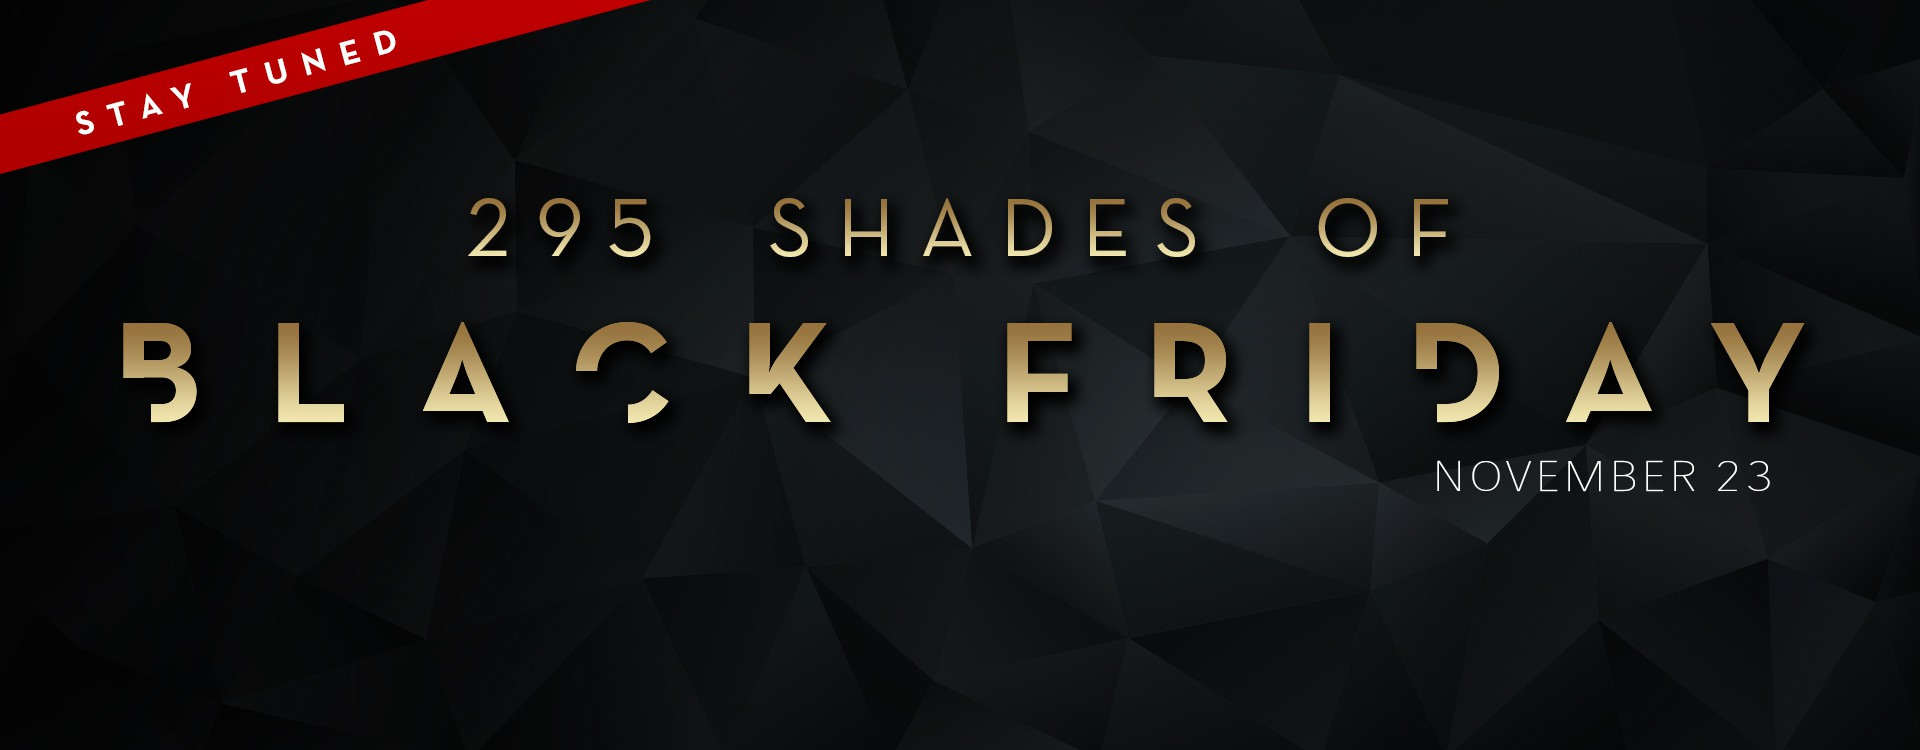 Slider blackfriday 2018 1920x750